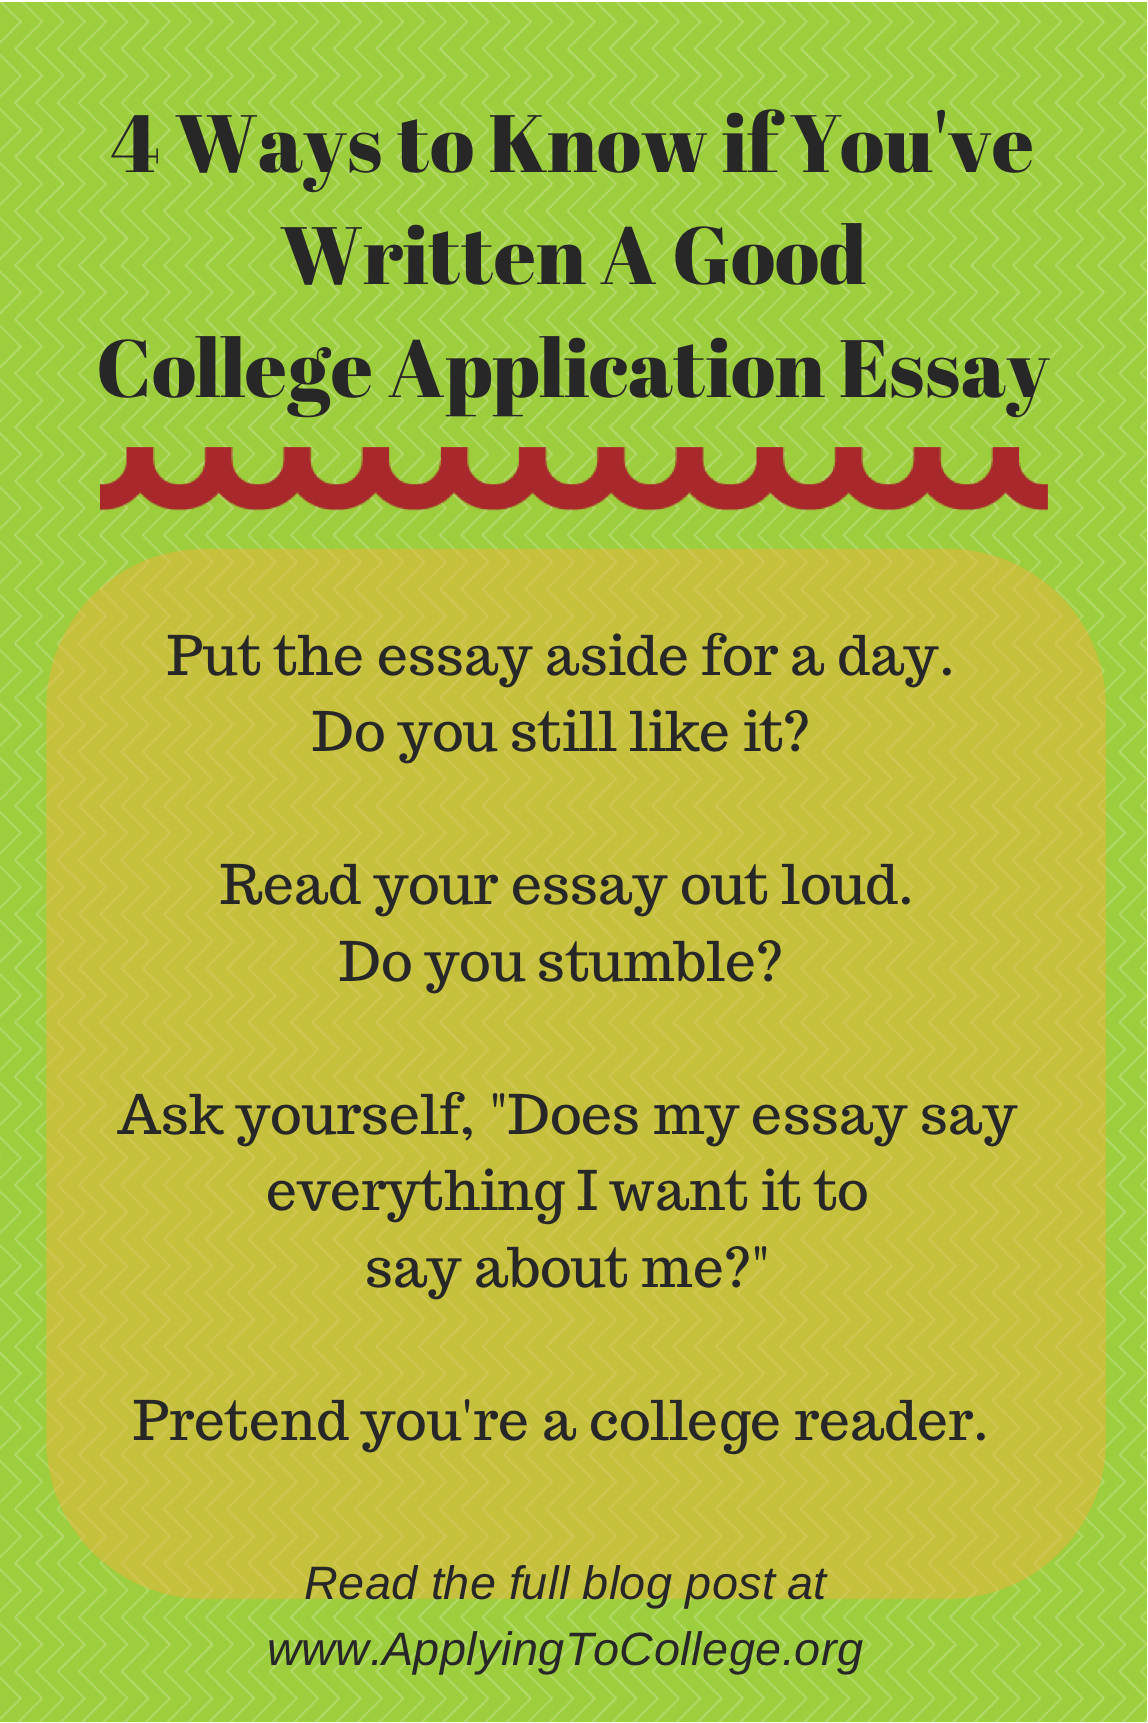 019 Tips To Write Good Essay Example 4ways Know If Youve Marvelous A Sat Descriptive Narrative Full